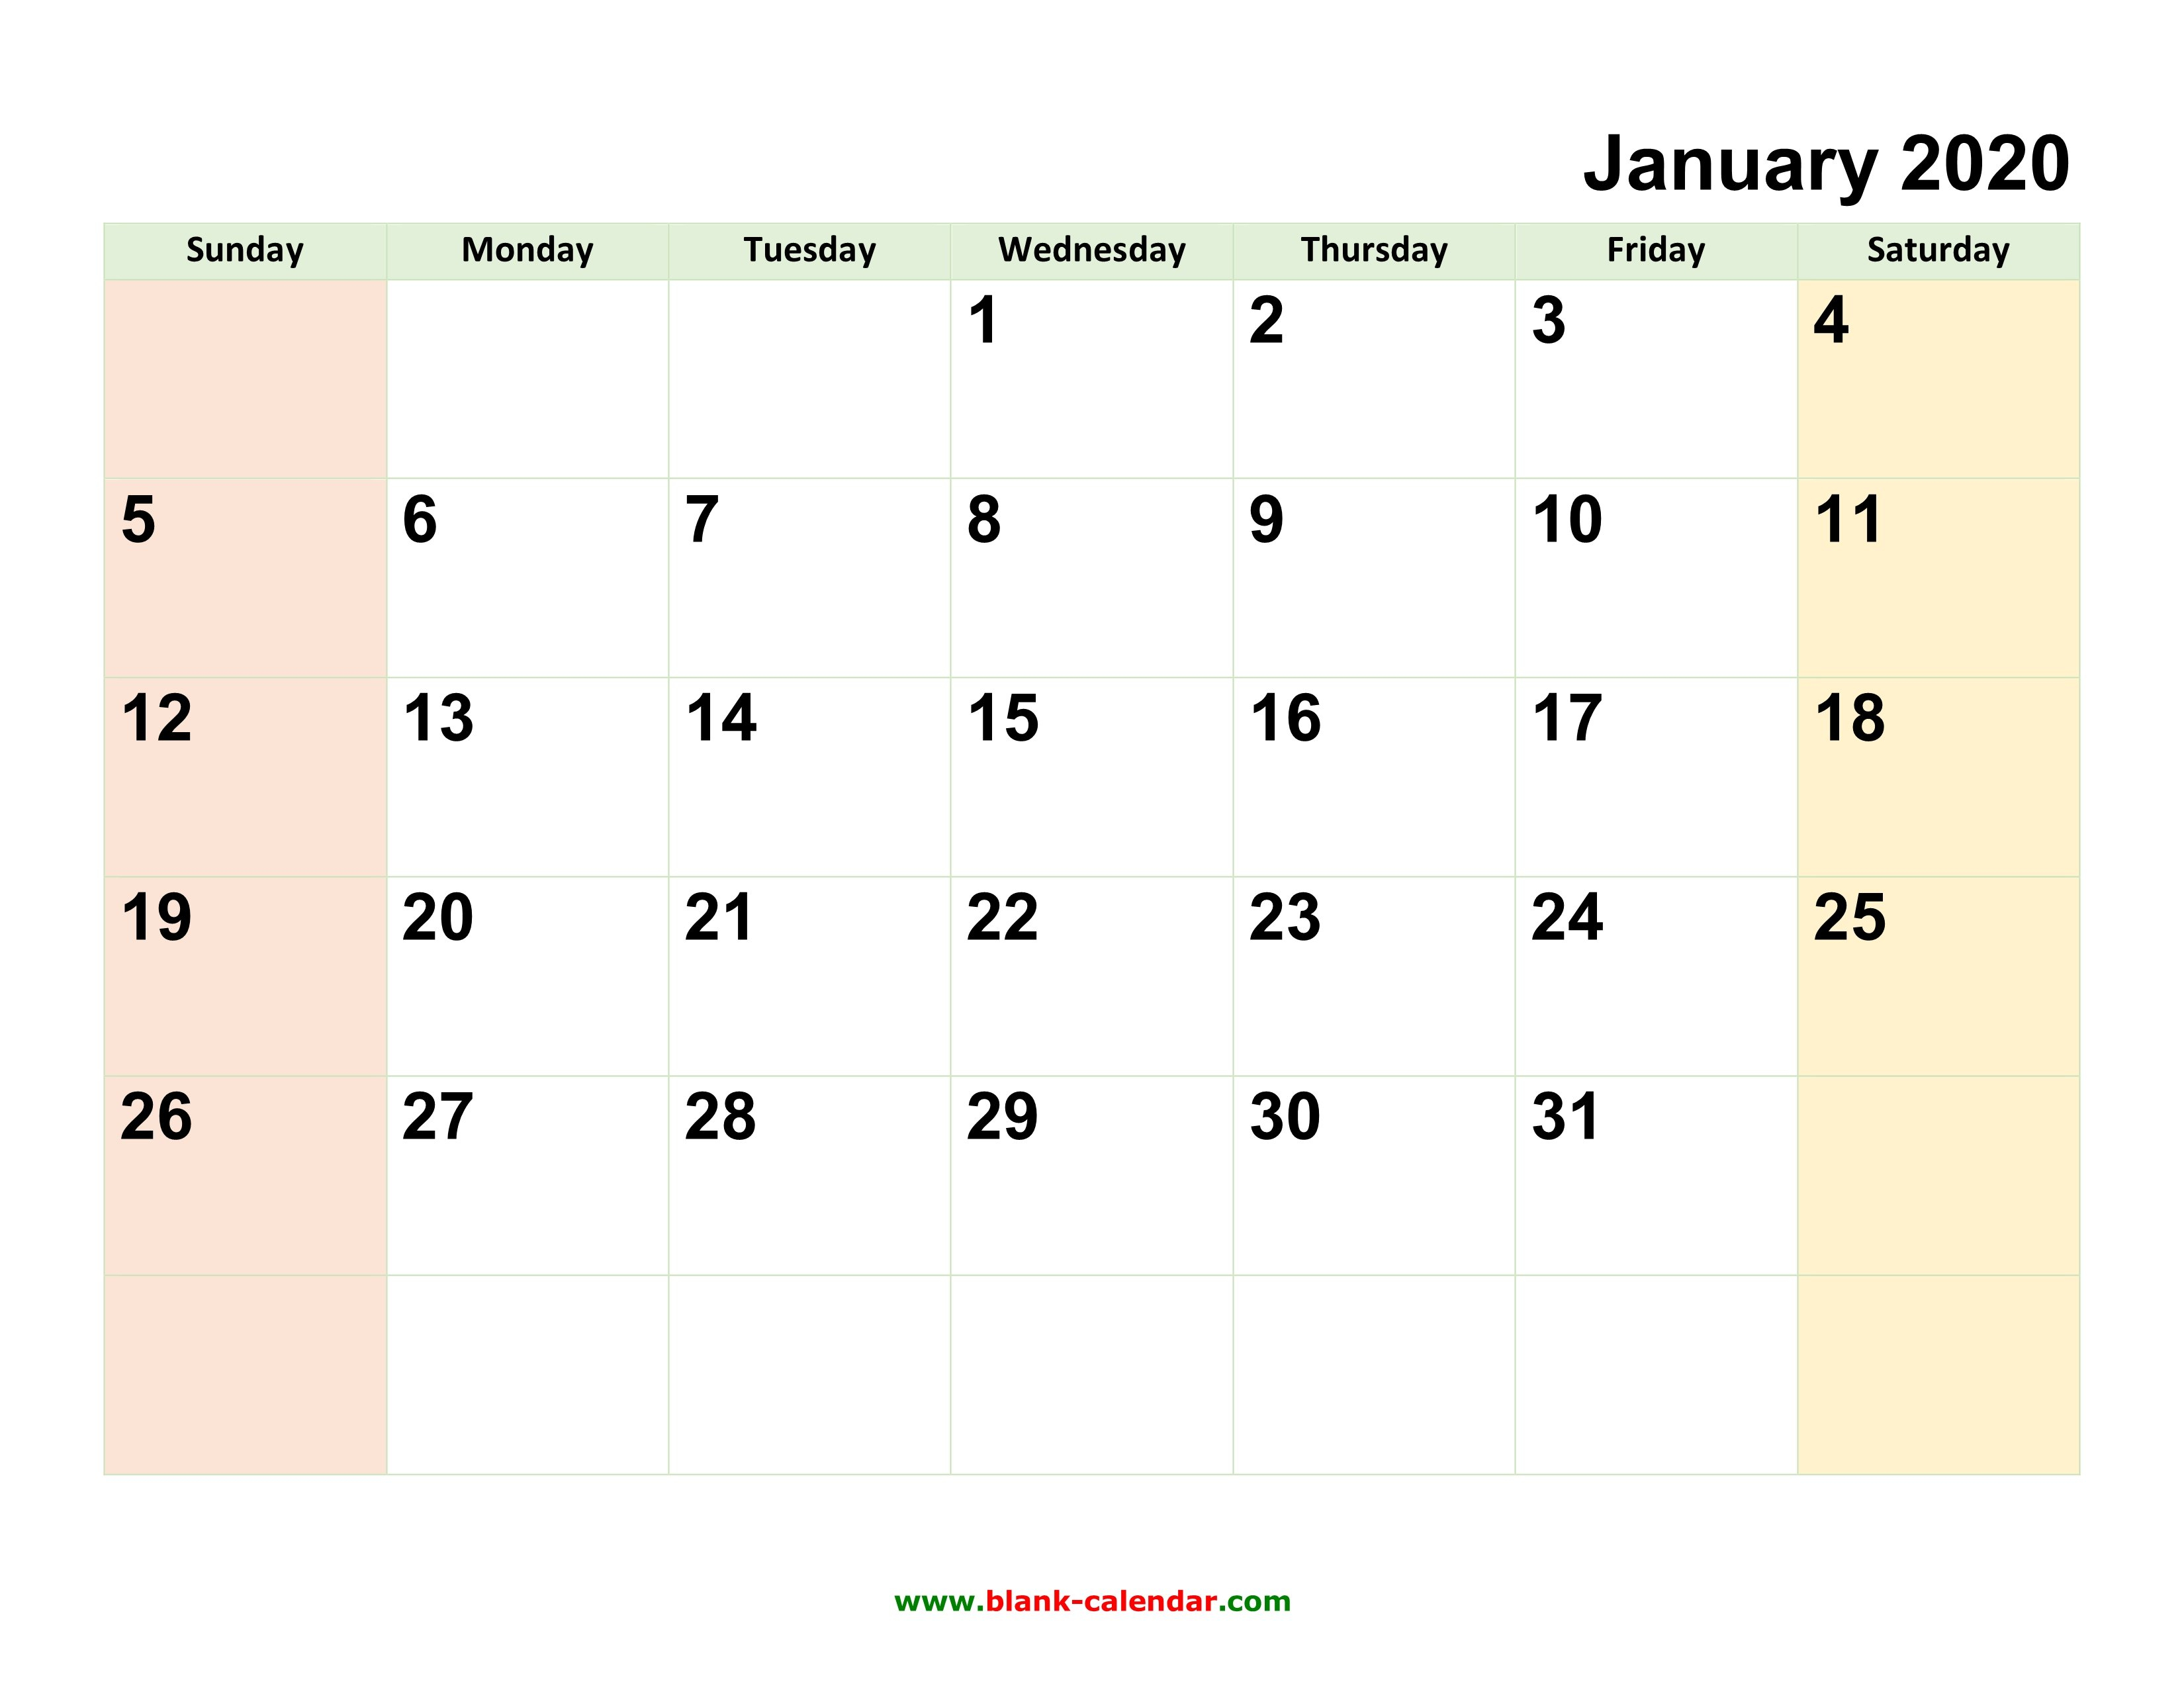 Monthly Calendar 2020 | Free Download, Editable And Printable Calendar I Can Download And Edit